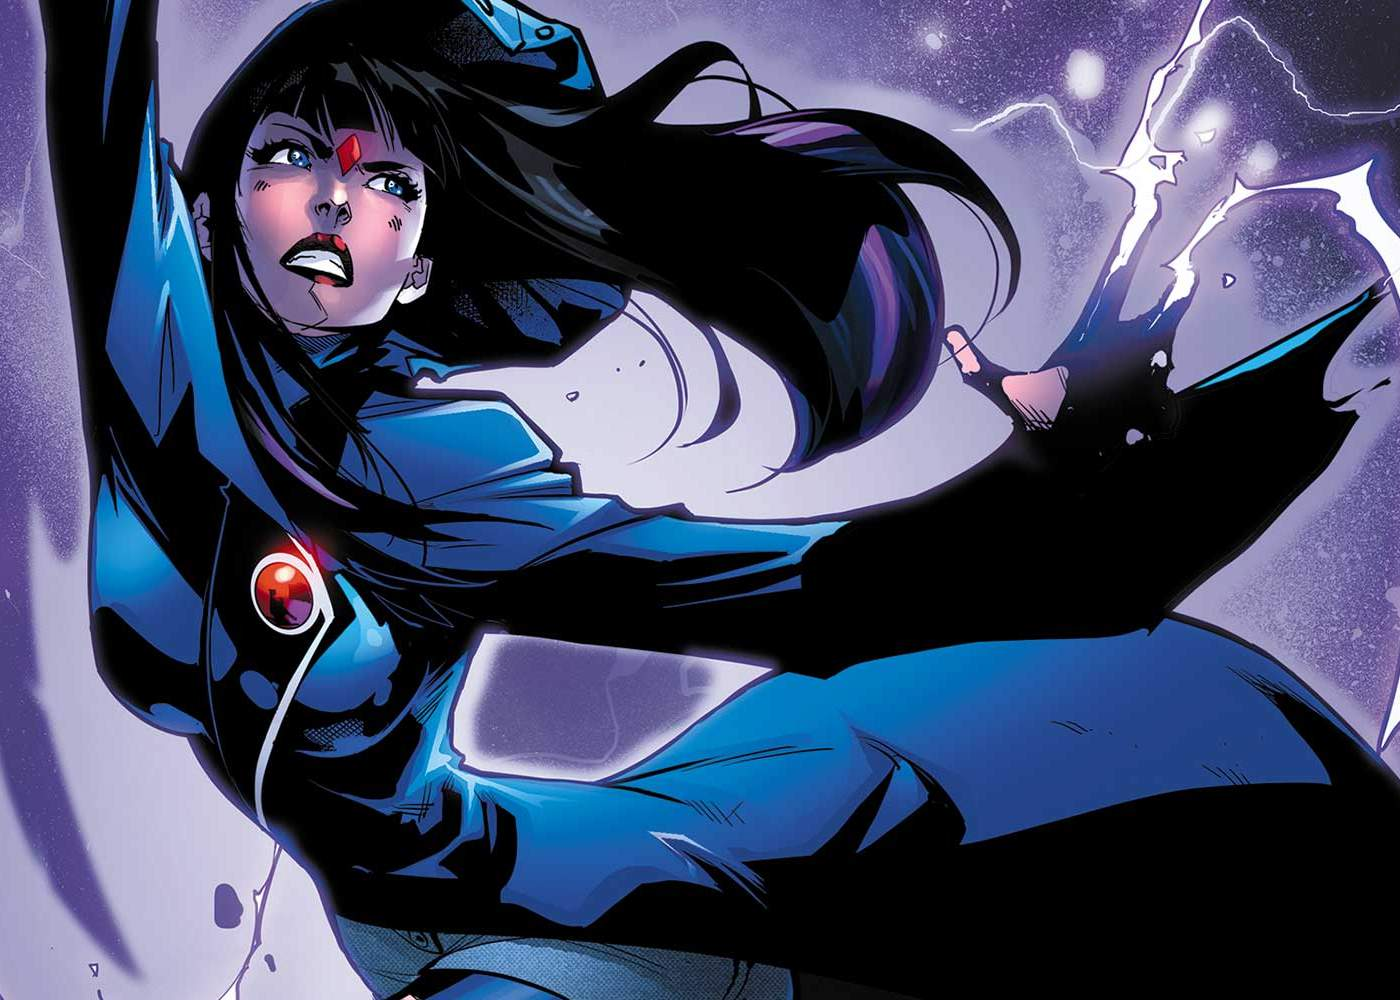 Live-Action Titans Series Casts Teagan Croft as Raven